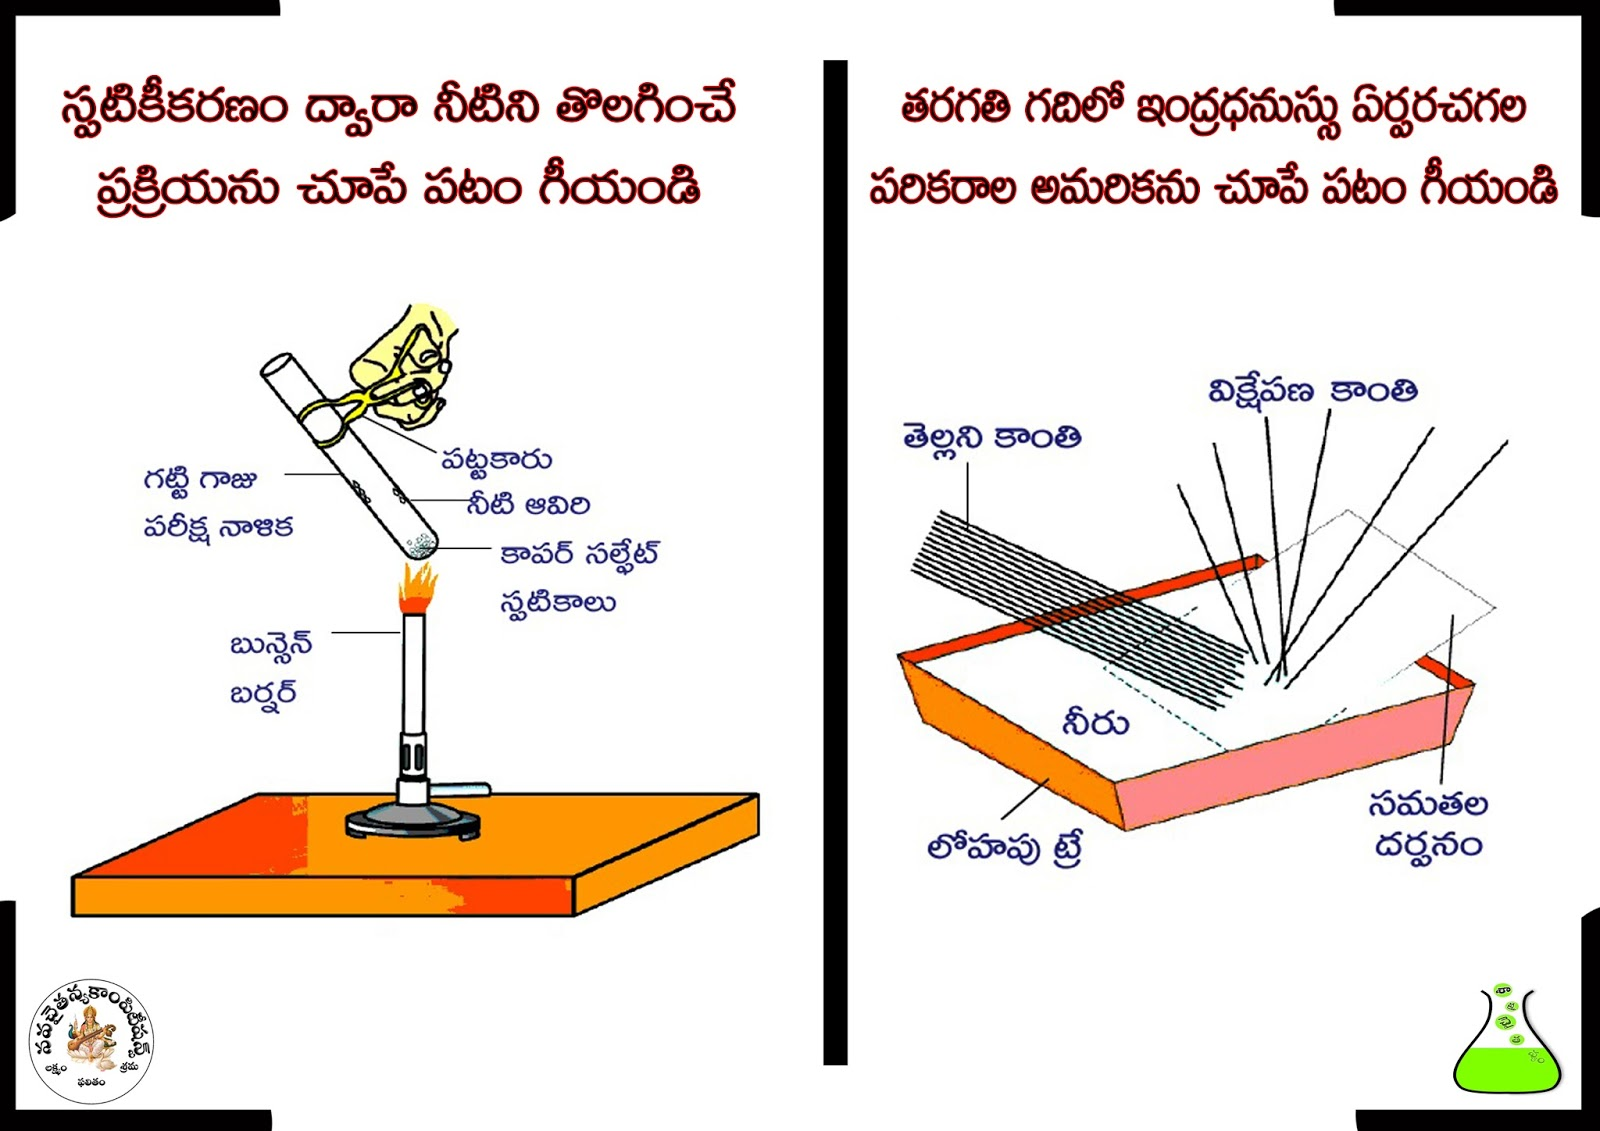 Science Diagrams For Class 8 110cc Atv Wiring Diagram Taotao 10th Physical సపటకకరణ పర